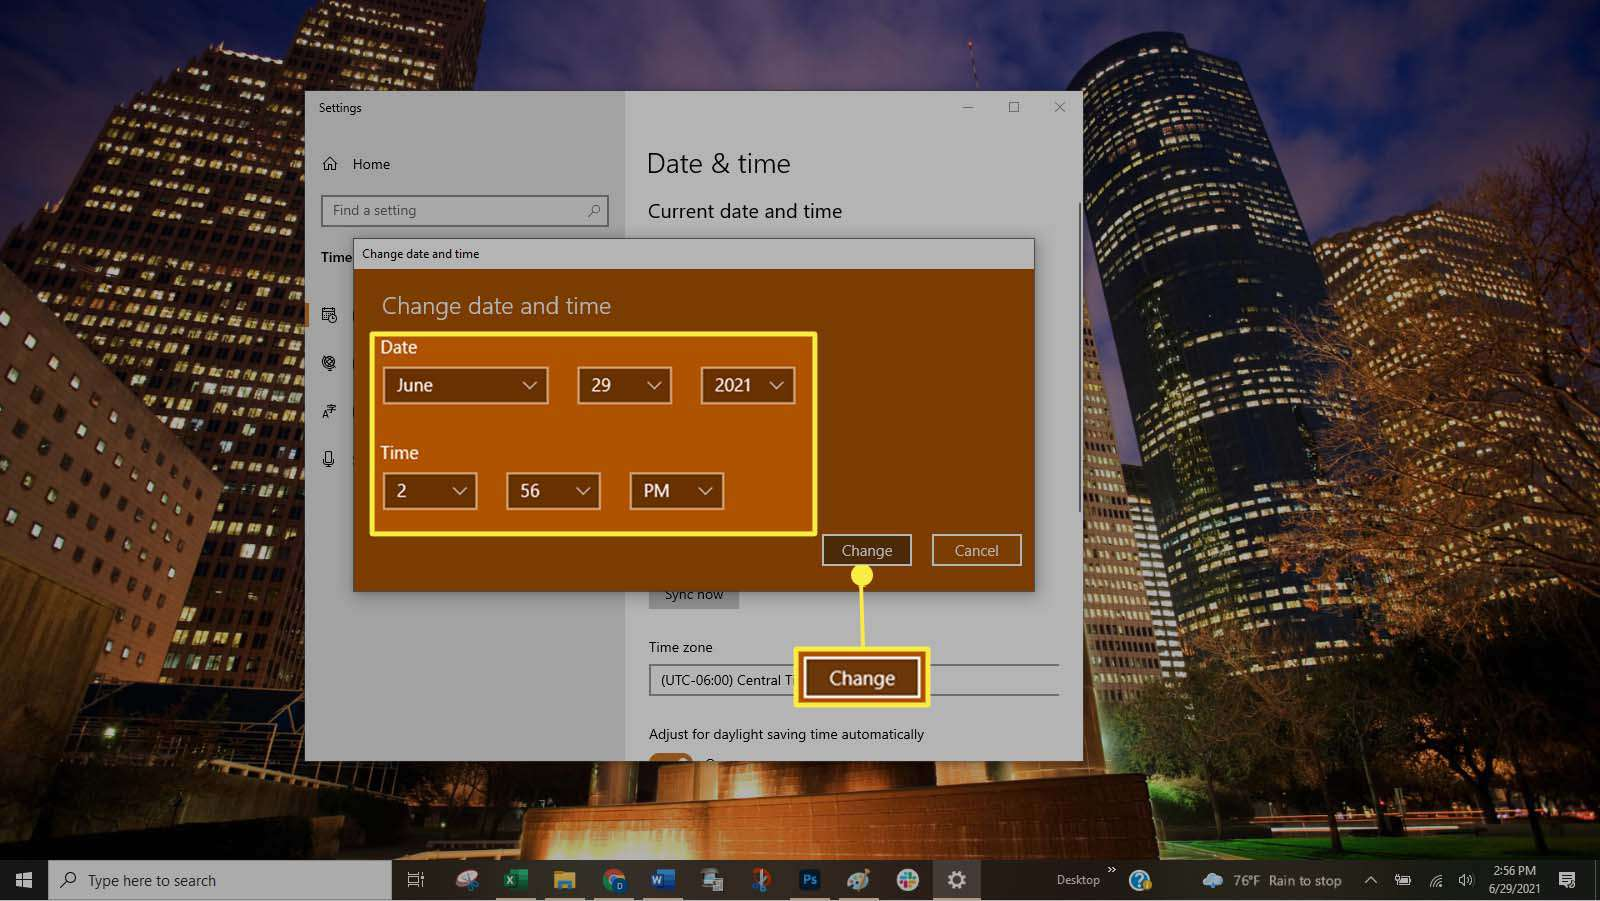 Manually setting the date and time in Windows 10.